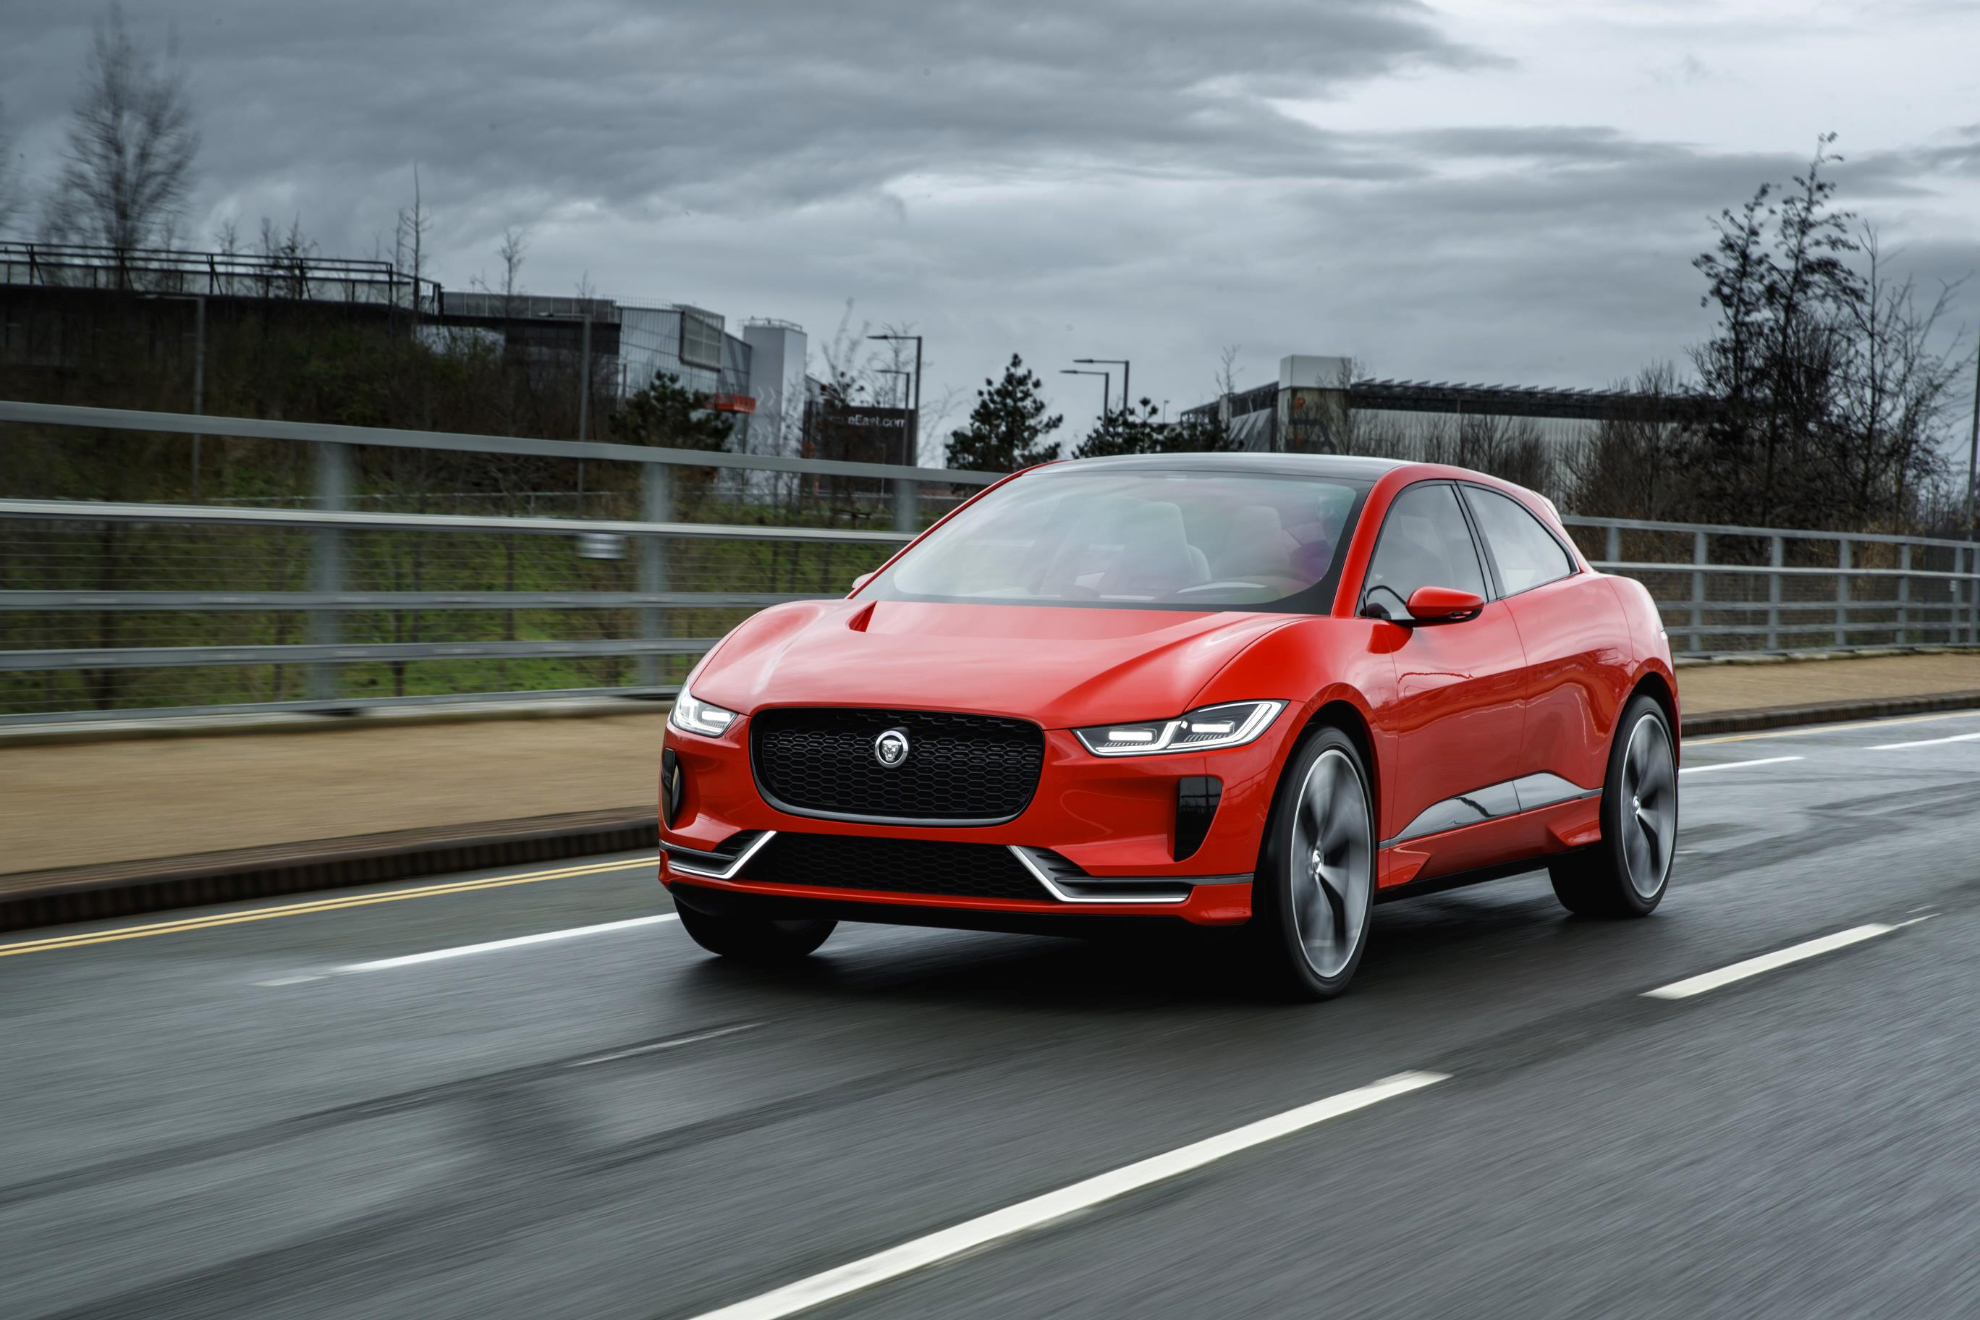 Jaguar's first electric vehicle, the I-PACE is coming 2018